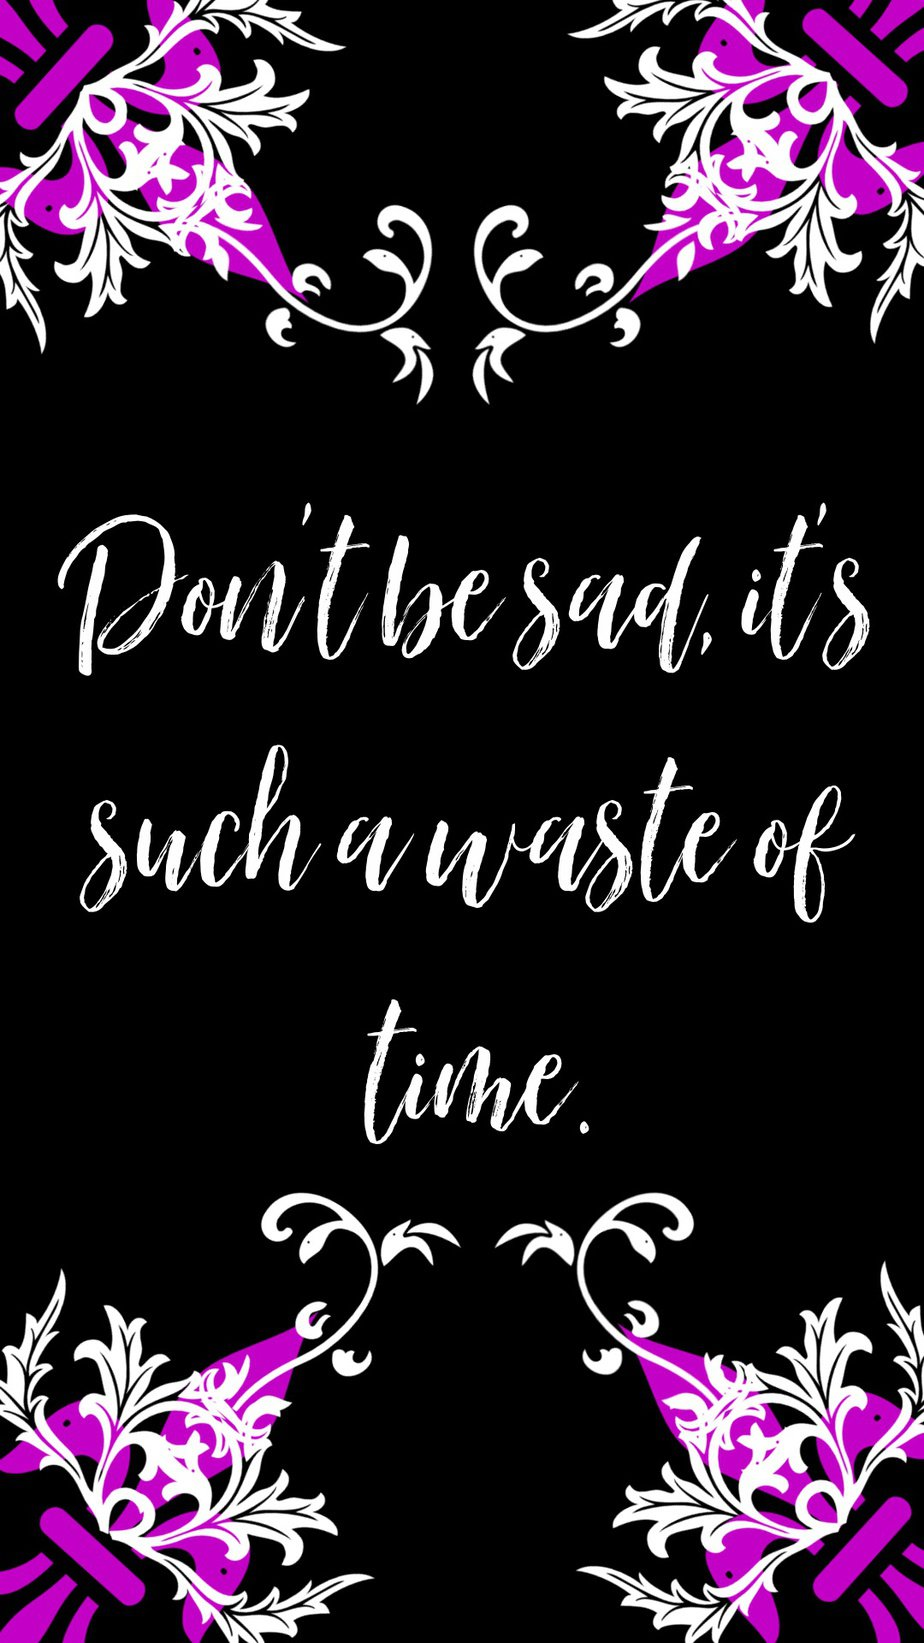 Best Aesthetic Phone Wallpaper Quotes About Being Sad Don't be sad, it's such a waste of time